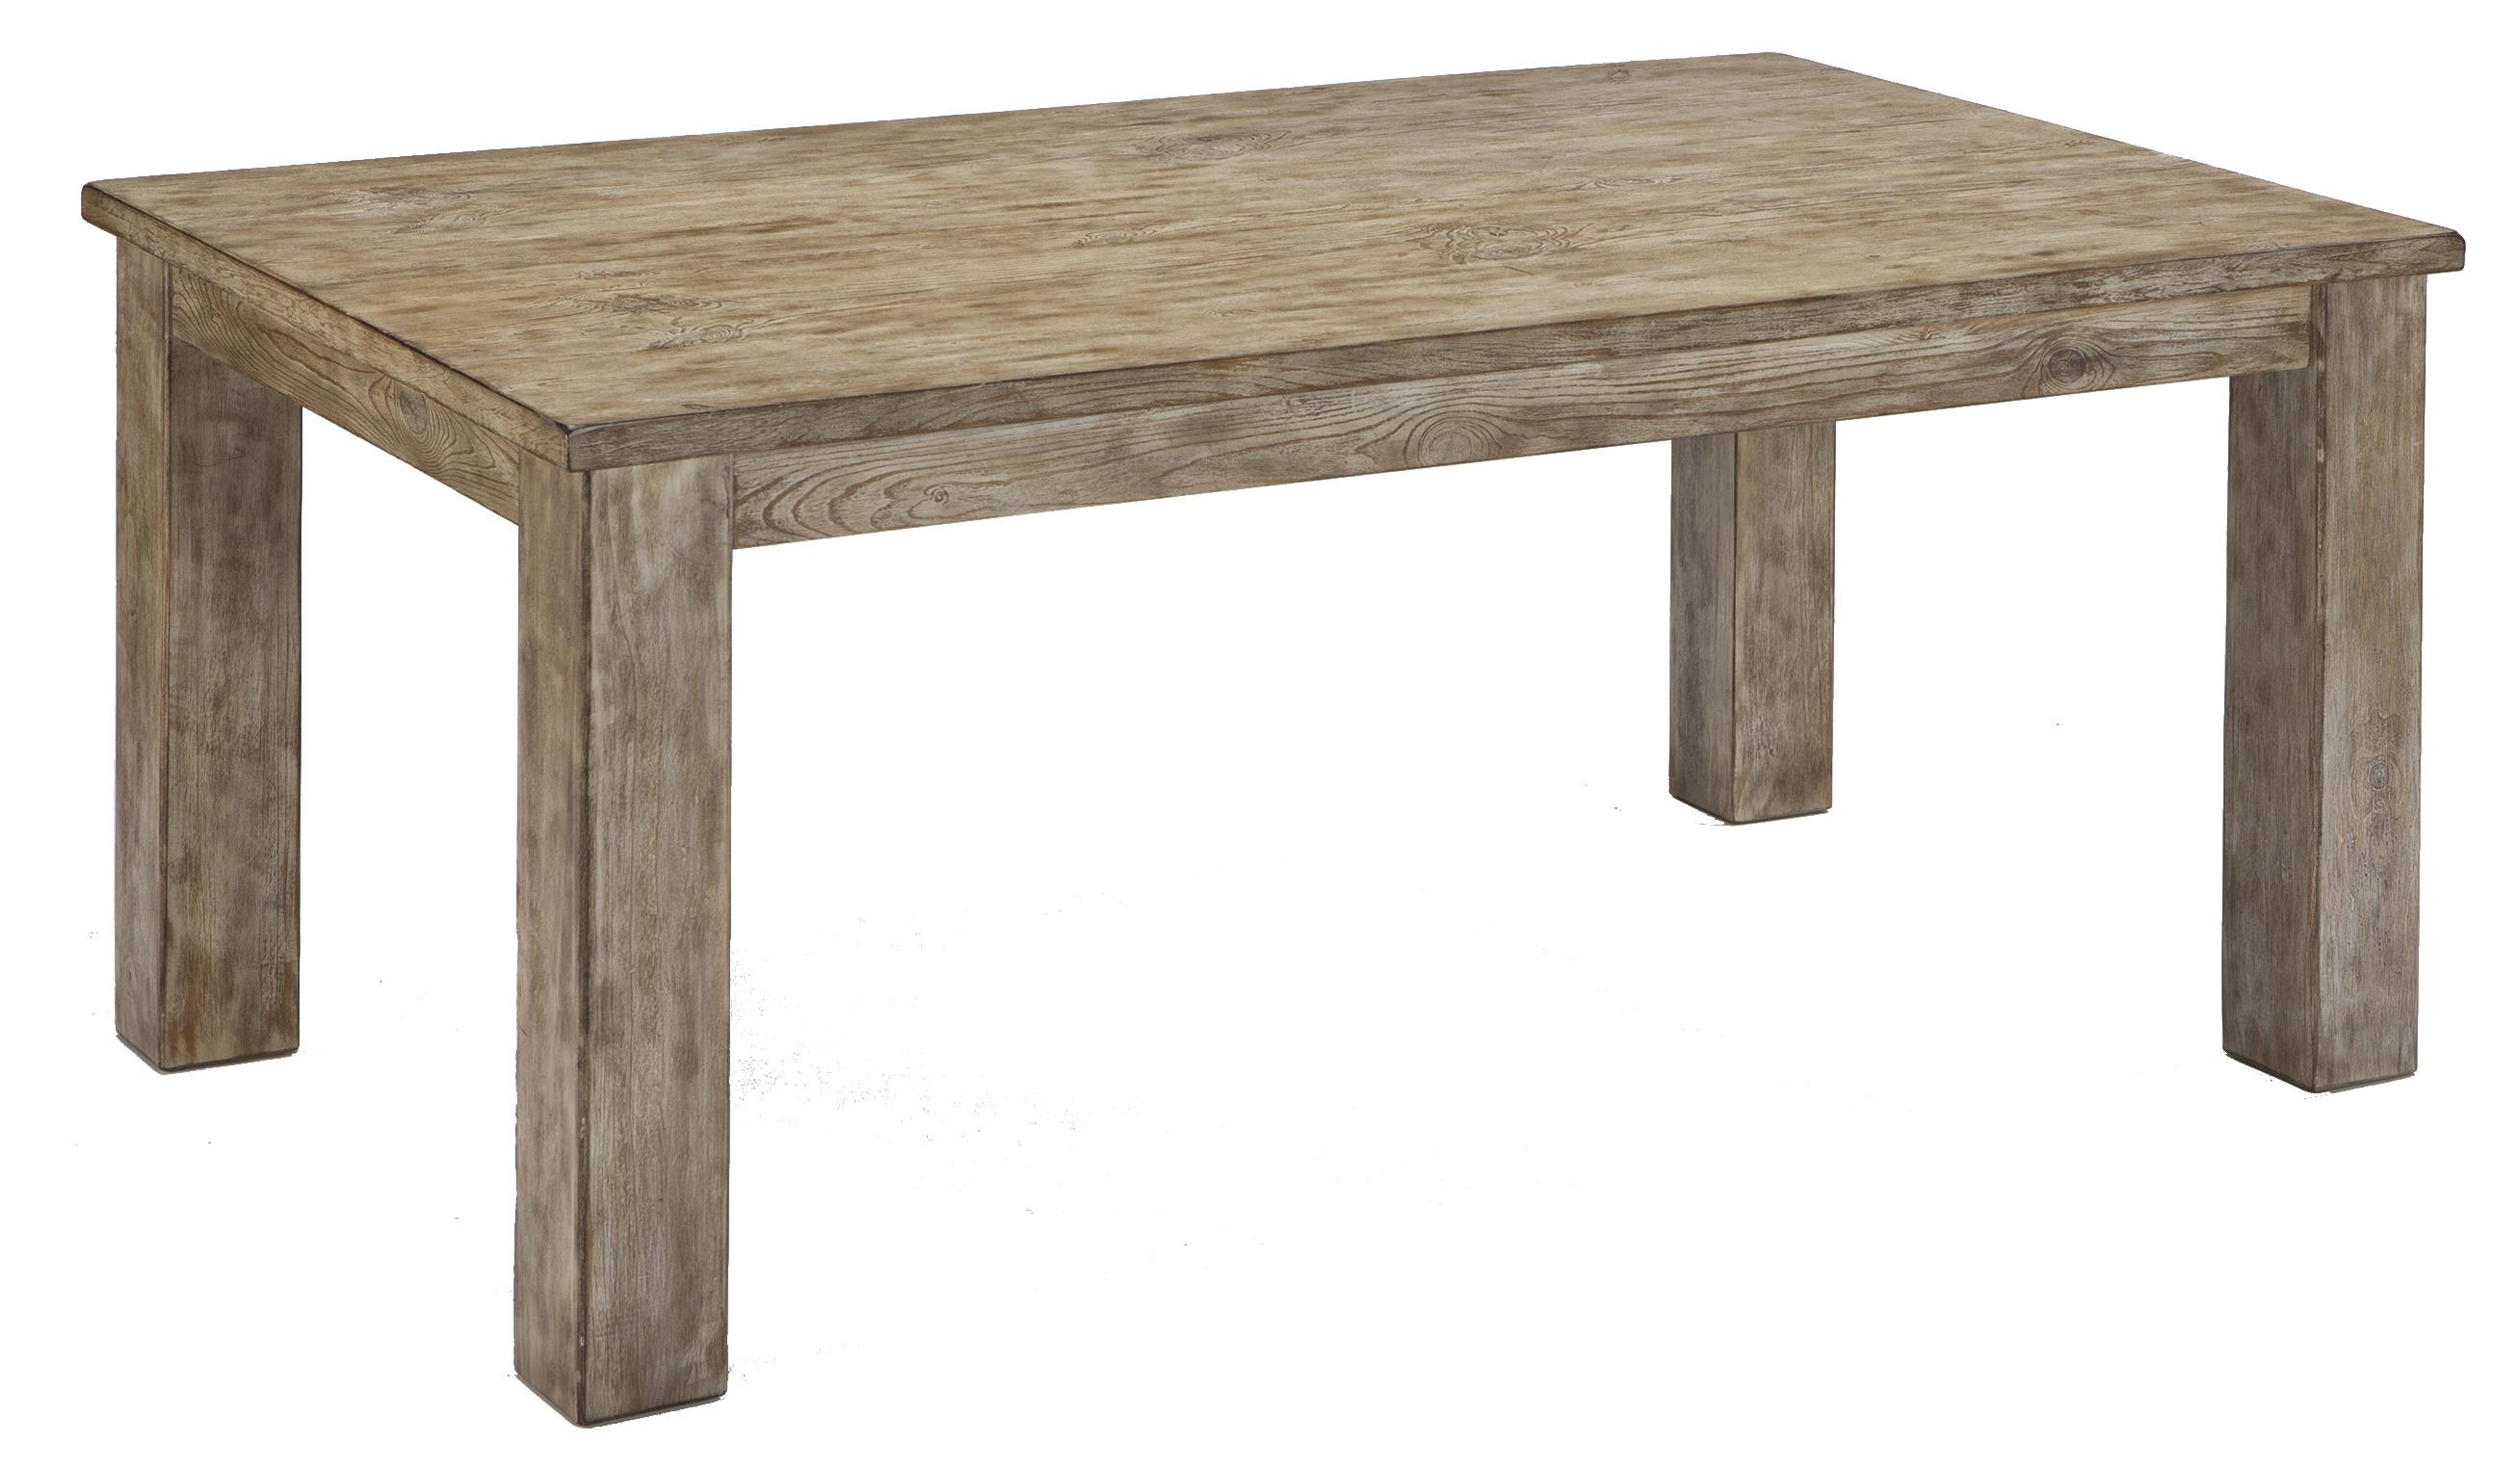 Signature Design by Ashley Mestler Rectangular Dining Room Table - Item Number: D540-225